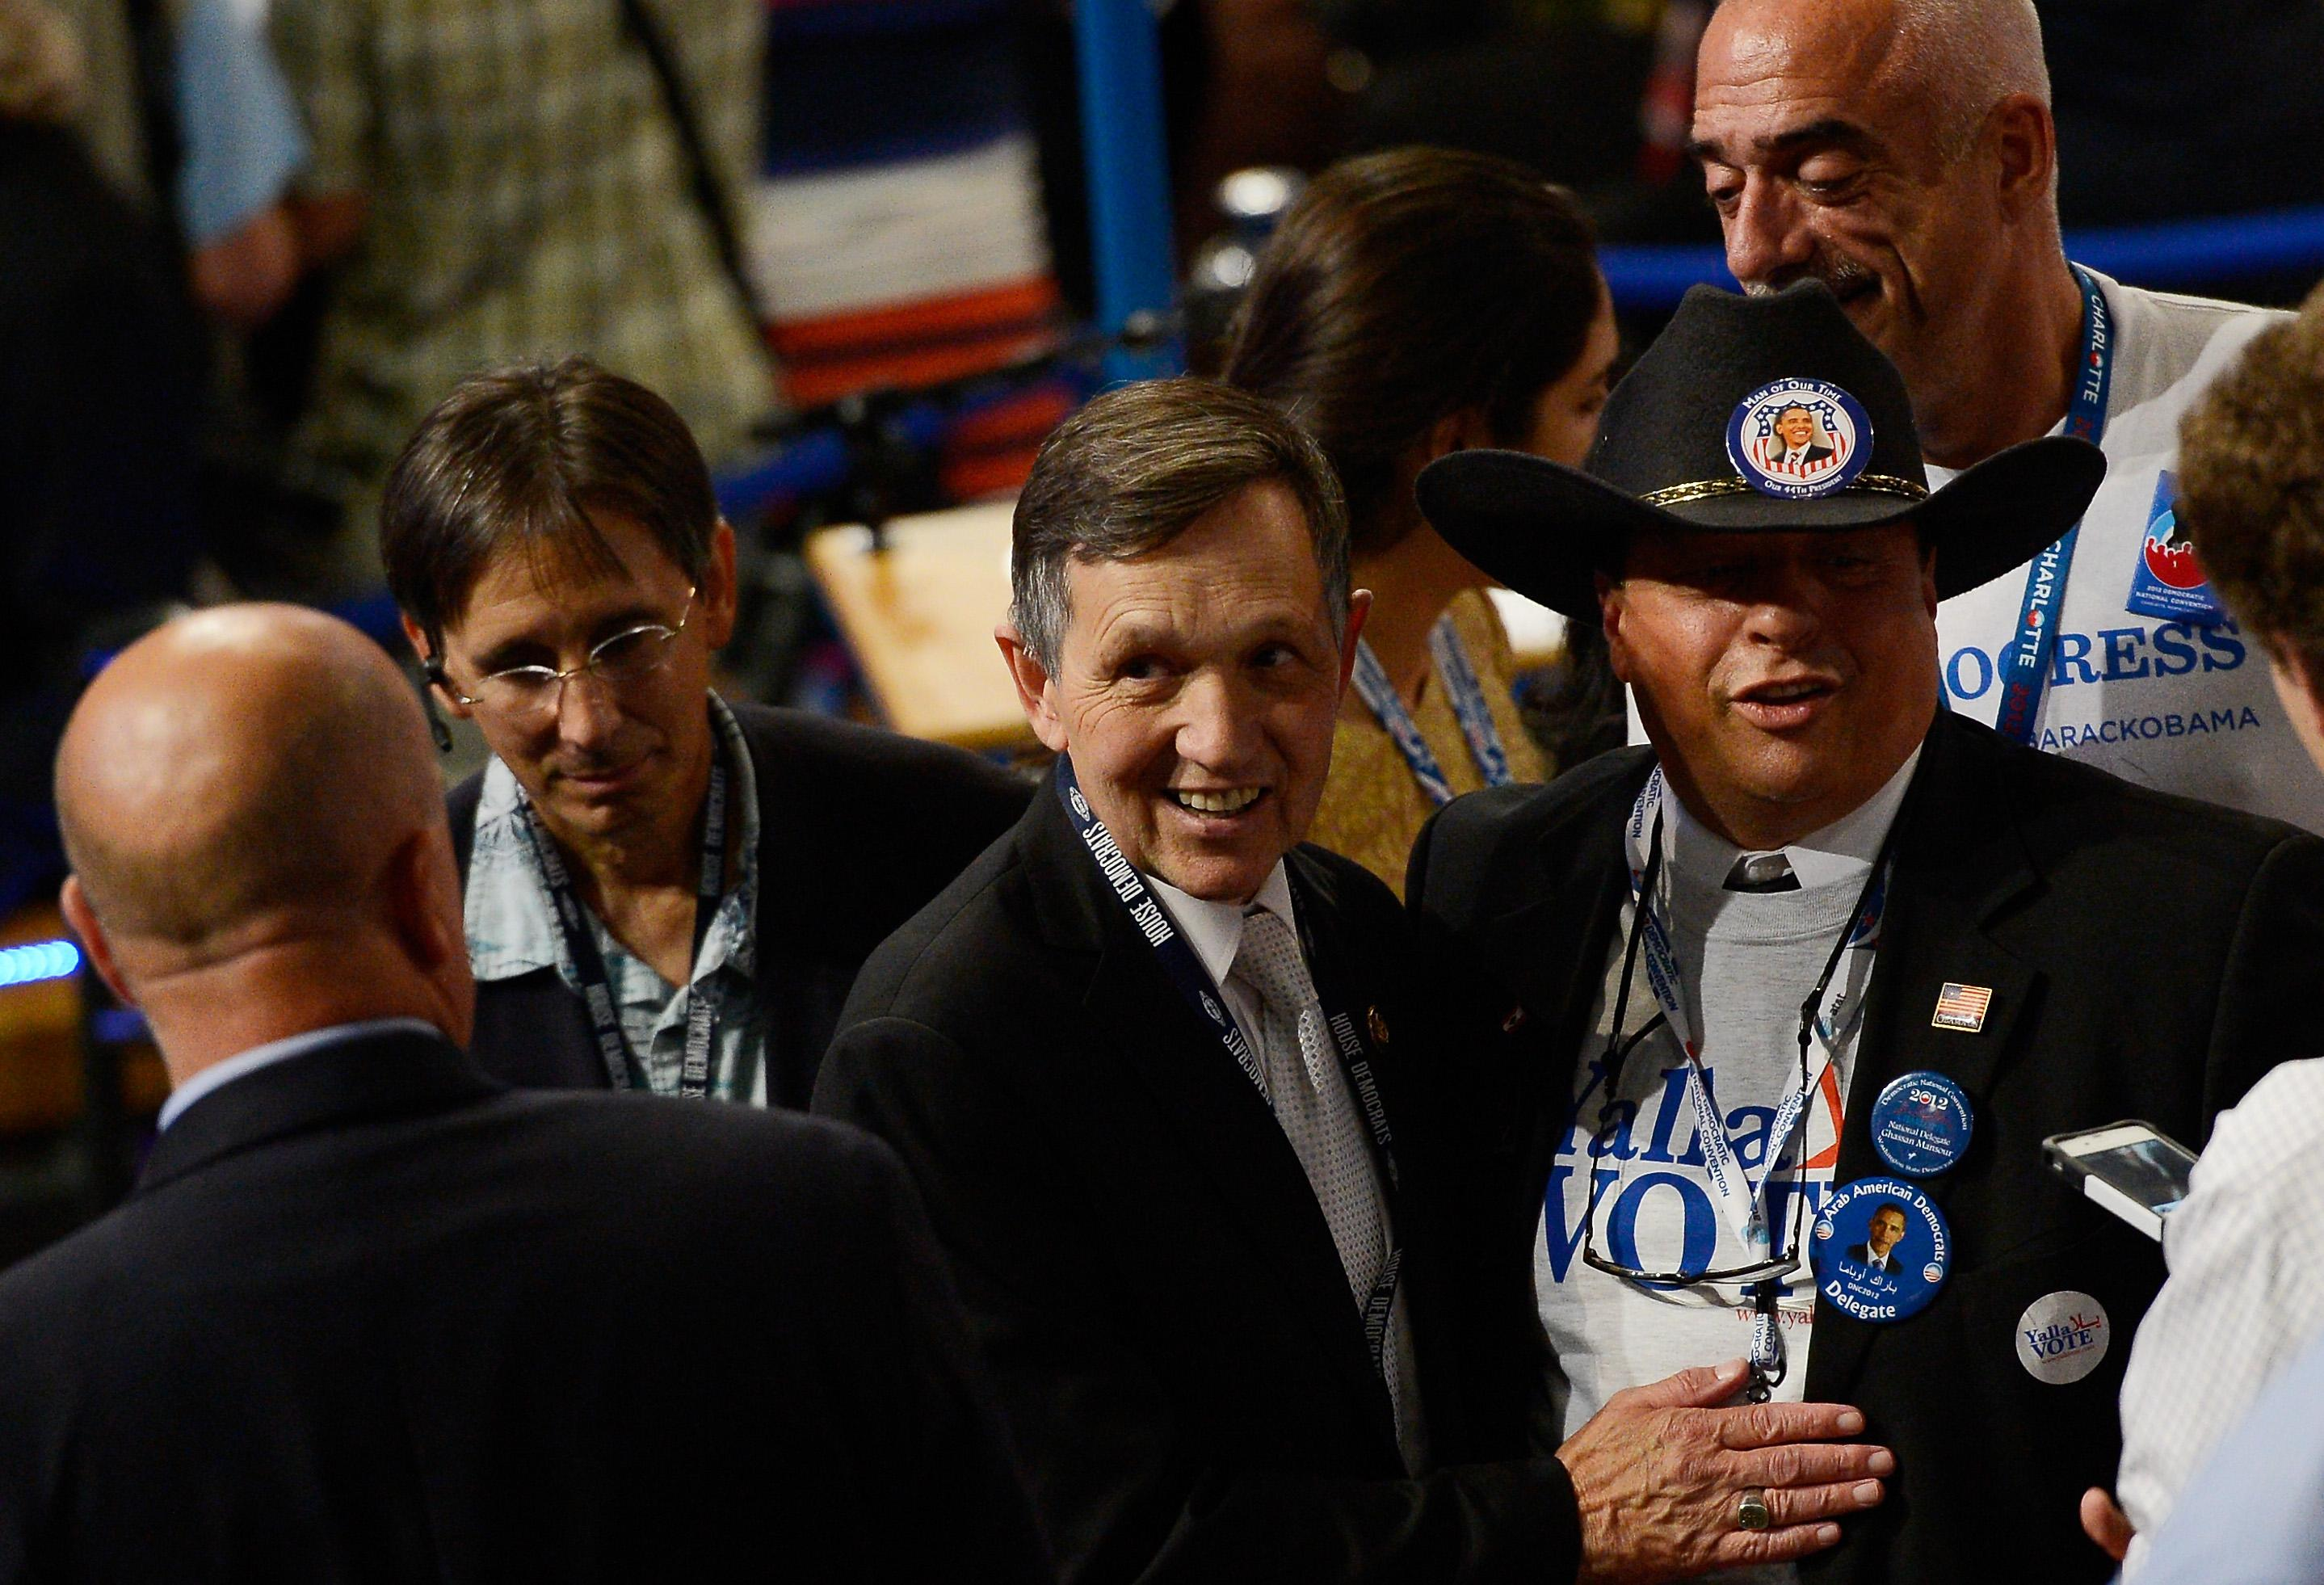 CHARLOTTE, NC - SEPTEMBER 05:  U.S. Rep. Dennis Kucinich (D-OH) meets with with Gus Mansour (R)during day two of the Democratic National Convention at Time Warner Cable Arena on September 5, 2012 in Charlotte, North Carolina. The DNC that will run through September 7, will nominate U.S. President Barack Obama as the Democratic presidential candidate.  (Photo by Kevork Djansezian/Getty Images)